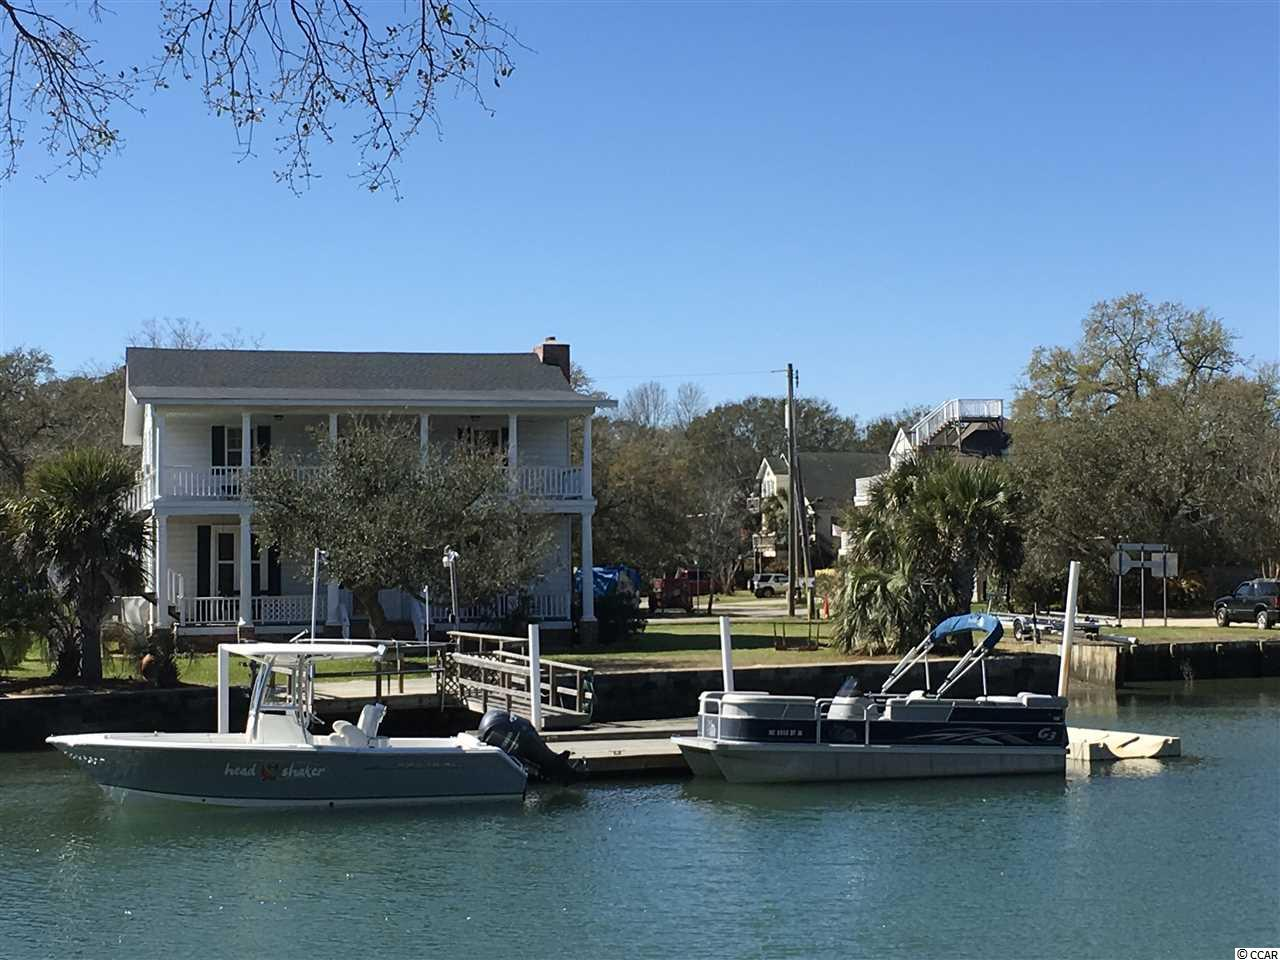 You Will Immediately Fall In Love With This Creek Front Home. Unique Beach Home with 103' of Direct Channel Access. This Home Radiates History and Fond Family Memories. Privately Owned BOAT RAMP. Not to mention a Stationary Dock - 16 x 14, 2 Floating Docks - 48' x 8' and the 2nd Dock - 16' x 10' with a Walkway 16' x 3'- AND a Concrete Sea Wall. Plenty of Room to Dock Several Boats. The Yard is a Great Size for Children Playing or Family Games and Barbecues. The Stationary Dock is set up with a Utility Sink to Clean Those Freshly Caught Fish as well as a Built in Bench. Interior Completed with Reclaimed Wood from a Church and a Railroad Station in Marion. 7 Bedrooms Total and 4 Baths, 2 Laundry Rooms and 2 Family/ Bonus Areas. Great Place to Gather the Entire Family for Memorable Summer Parties and All Year Round Gatherings. DIRECTLY on the INLET and Five Minutes Away From Restaurants,Entertainment and The Inlet Marsh Walk. Amazing Views of the Inlet from Both 34' Porches and a Wonderful Balmy Breeze Off the Inlet.